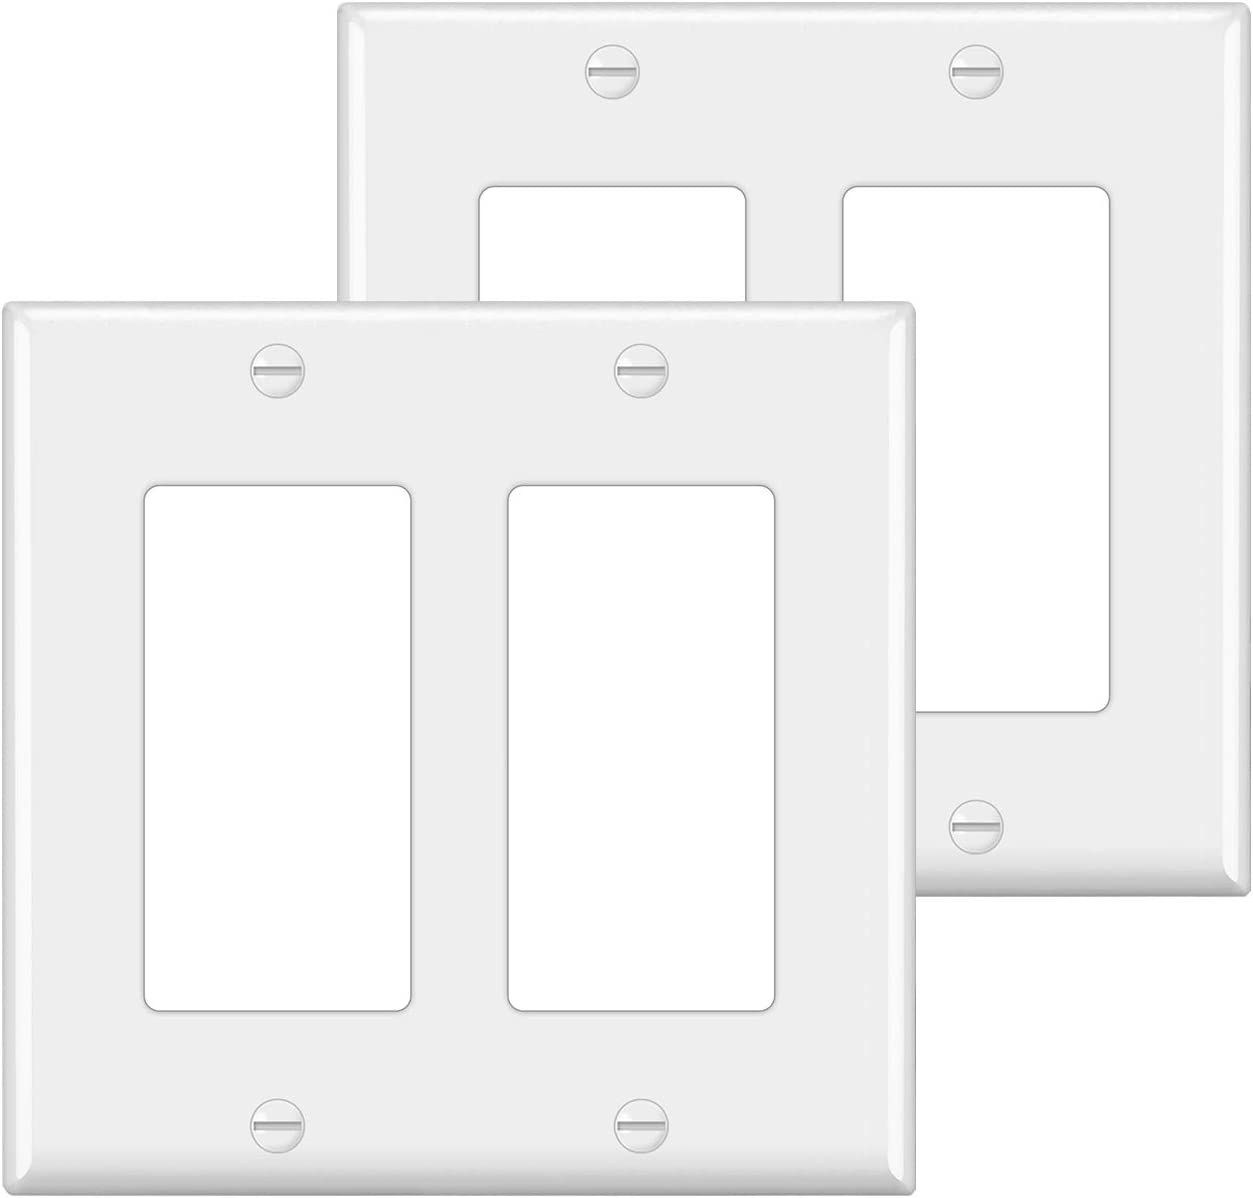 [2 Pack] BESTTEN 2-Gang Decorator Wall Plate, Standard Size, Unbreakable Polycarbonate Outlet and Switch Cover, UL Listed, White